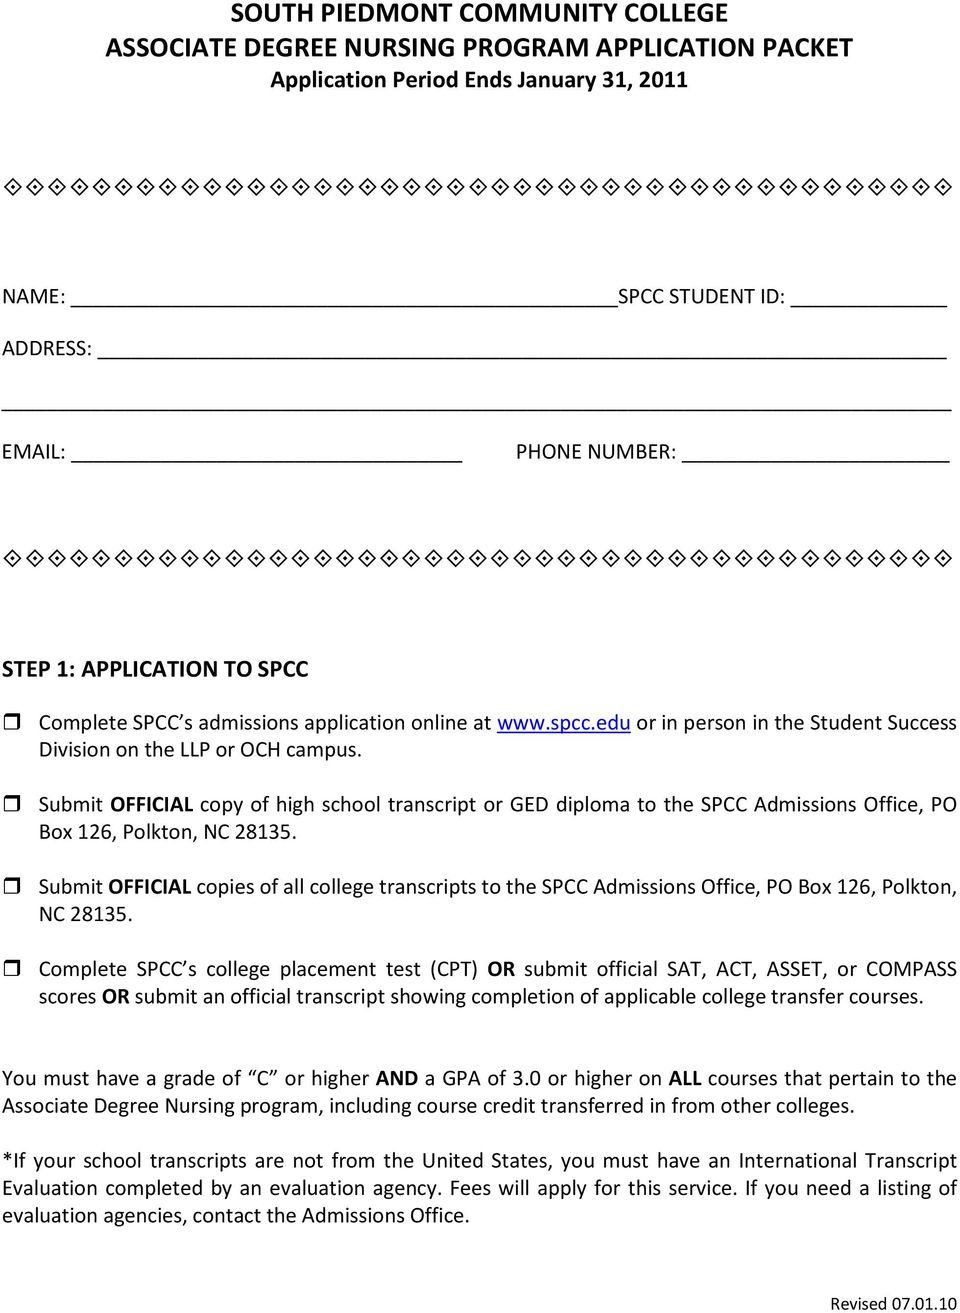 Submit OFFICIAL copy of high school transcript or GED diploma to the SPCC Admissions Office, PO Box 126, Polkton, NC 28135.